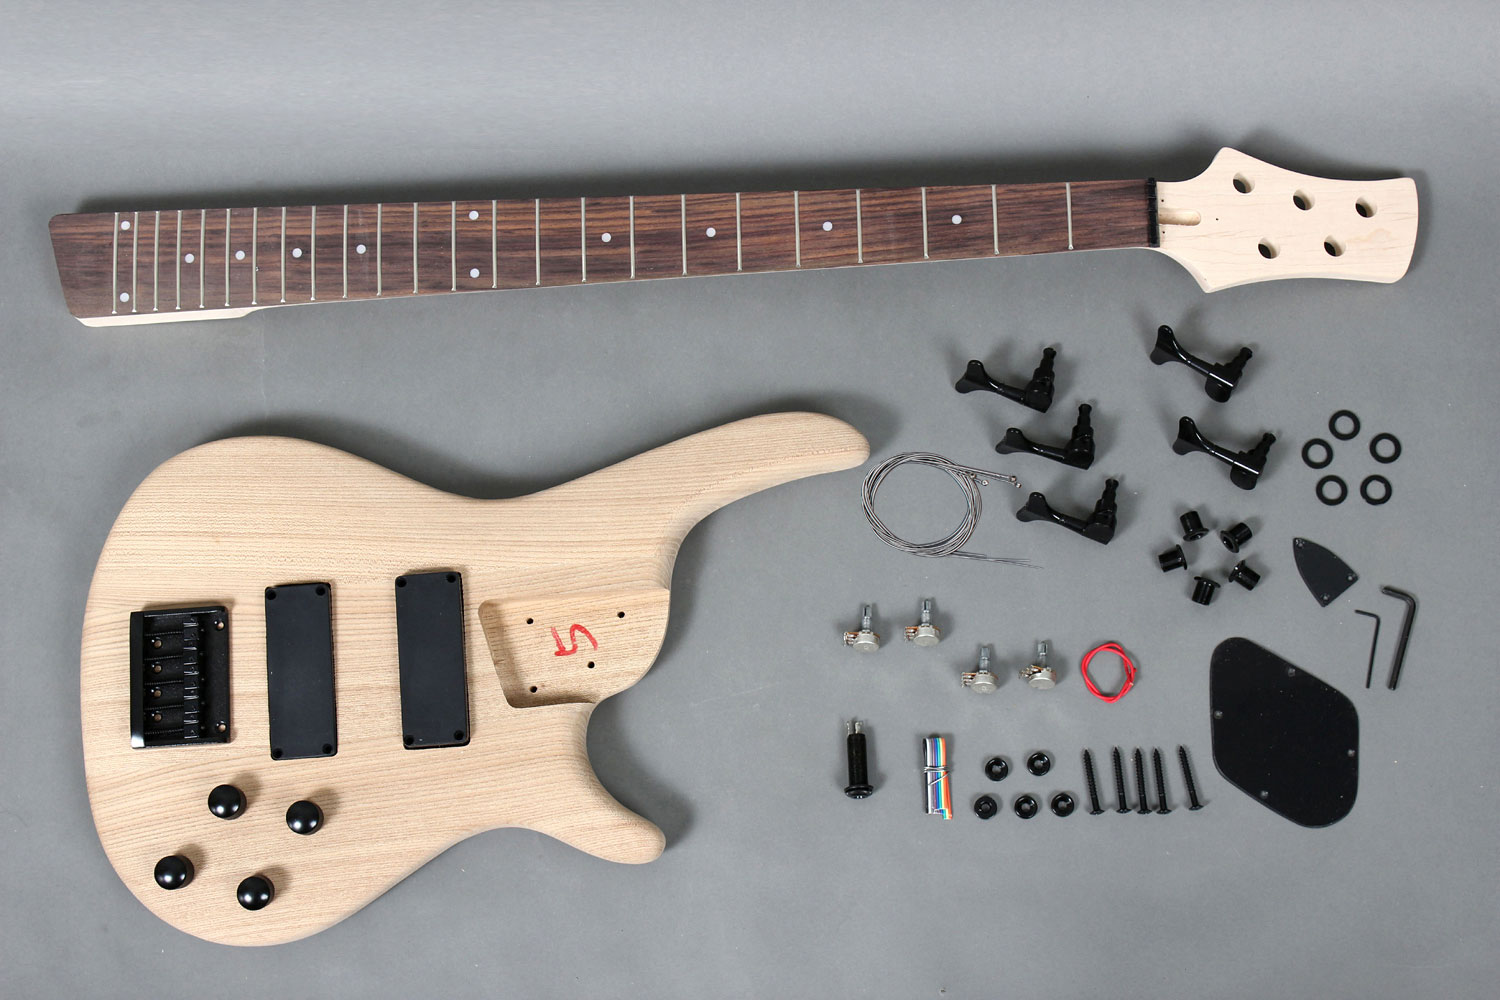 5 strings electric bass guitar diy kit with solid ash body gk se5 5 strings electric bass guitar diy kit with solid ash body gk se5 720 gk se5 720 solutioingenieria Choice Image